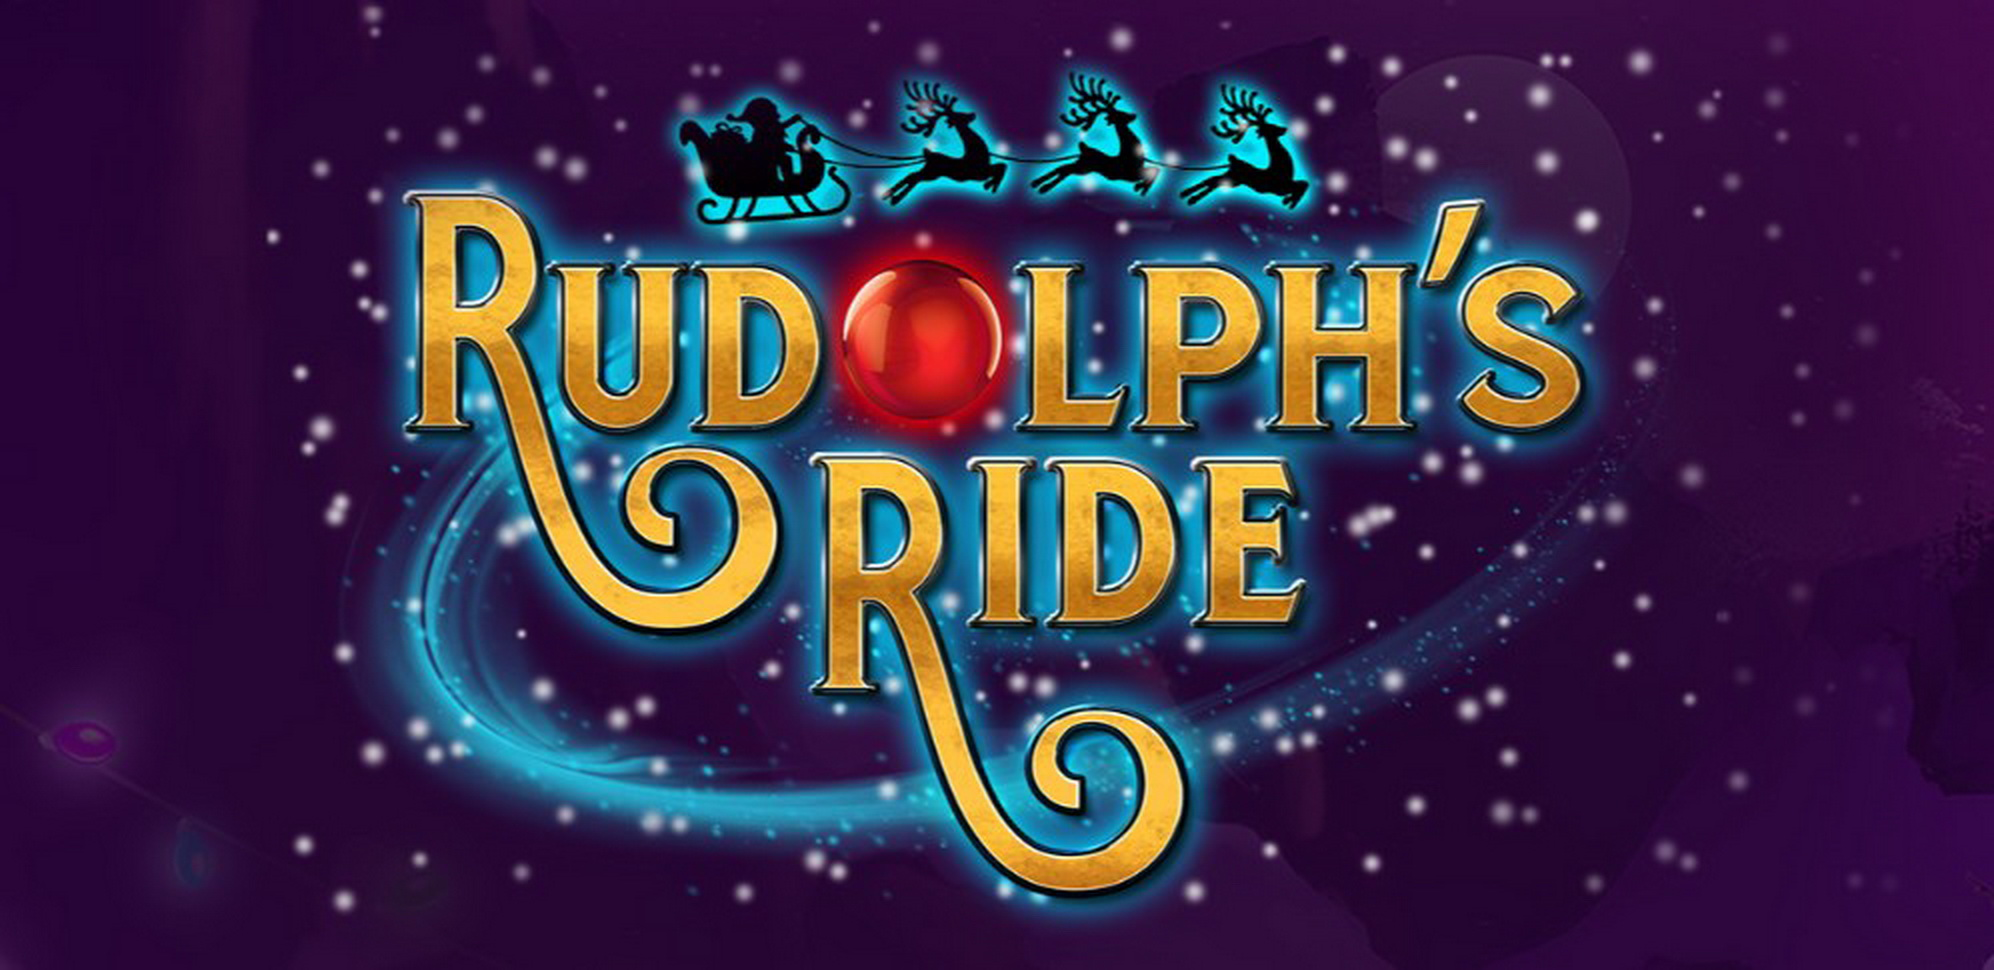 The Rudolph's Ride Online Slot Demo Game by Booming Games